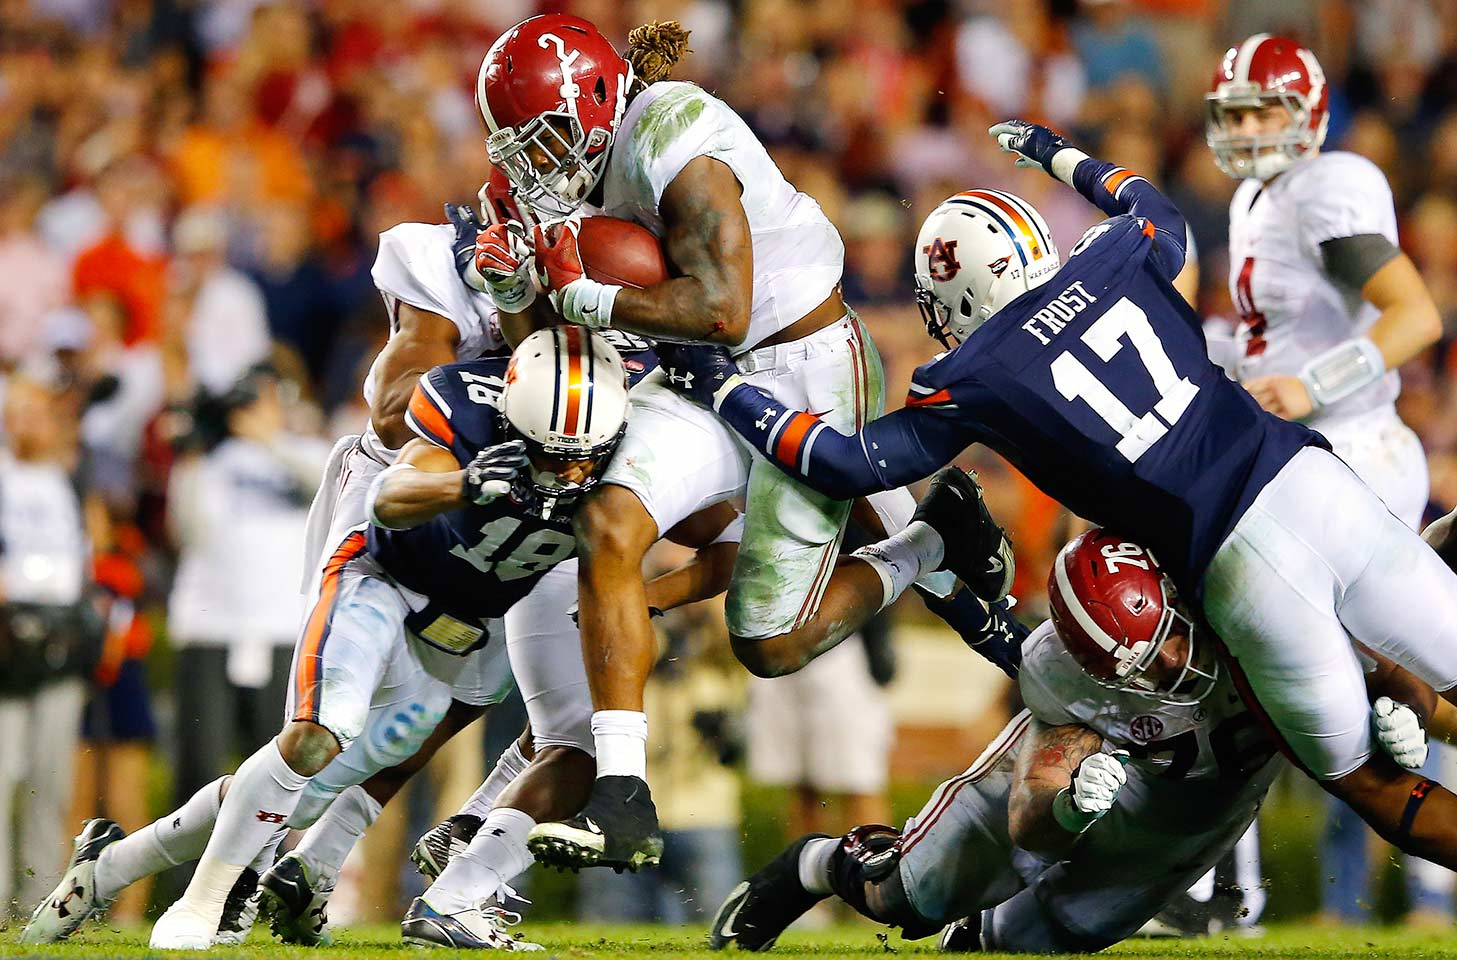 Alabama 29, Auburn 13. The Crimson Tide kept feeding Derrick Henry the rock, and he kept delivering. Henry rushed 46 times for 271 yards to propel Alabama to victory in the Iron Bowl.